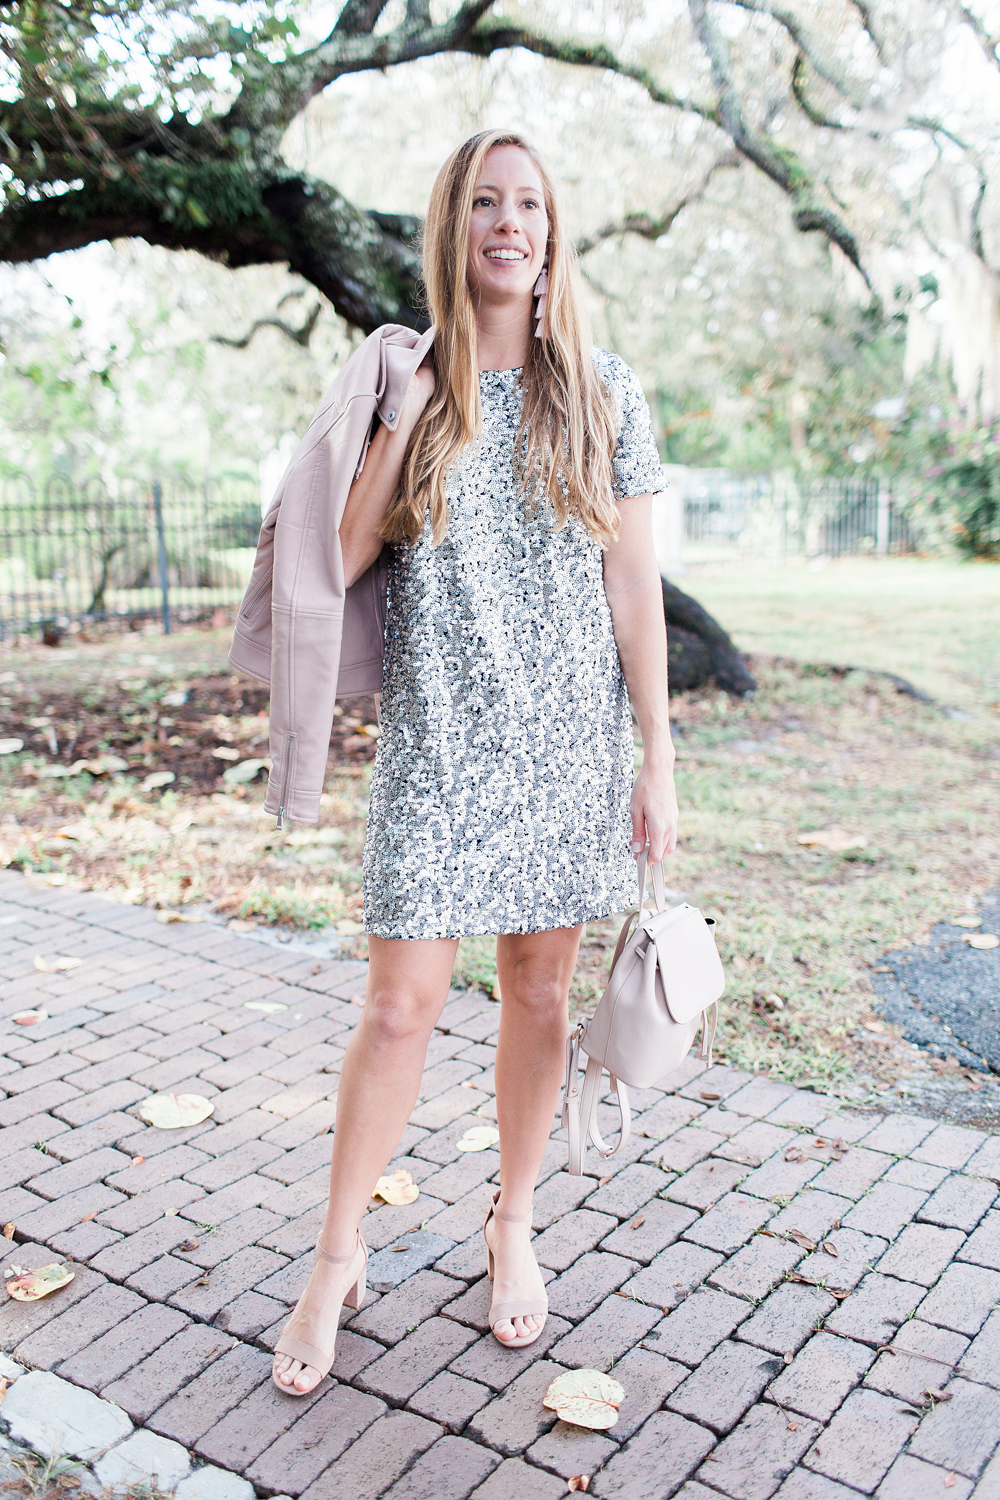 Sequin New Years Eve Dresses // What to Wear on New Years // New Years Eve Outfit Ideas // Sparkly Dresses // New Years Party Dresses // Pink Leather Jacket // Nude Block Heels // More on www.sunshinestyleblog.com #nye #nyedresses #nyedress #dresses #partydress